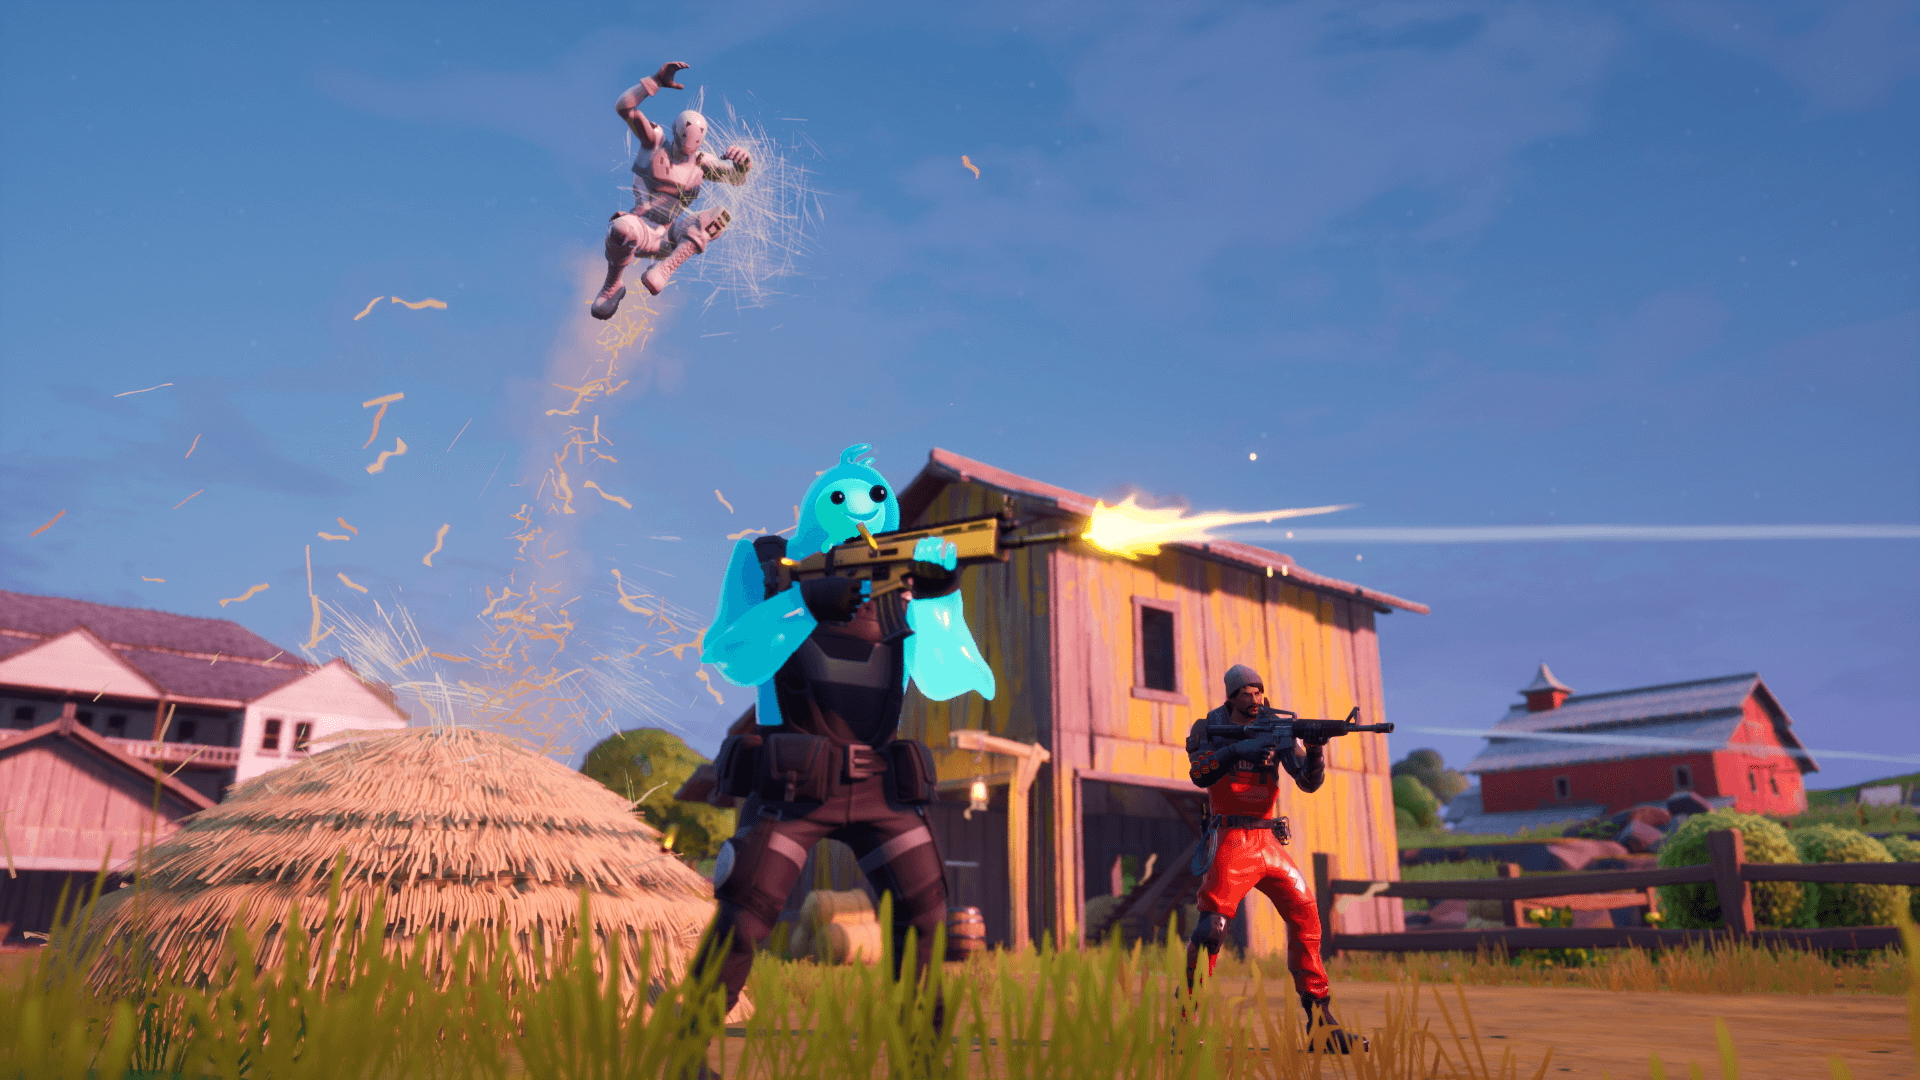 2560x1080 Fortnite 2 Game 2560x1080 Resolution Wallpaper Hd Games 4k Wallpapers Images Photos And Background